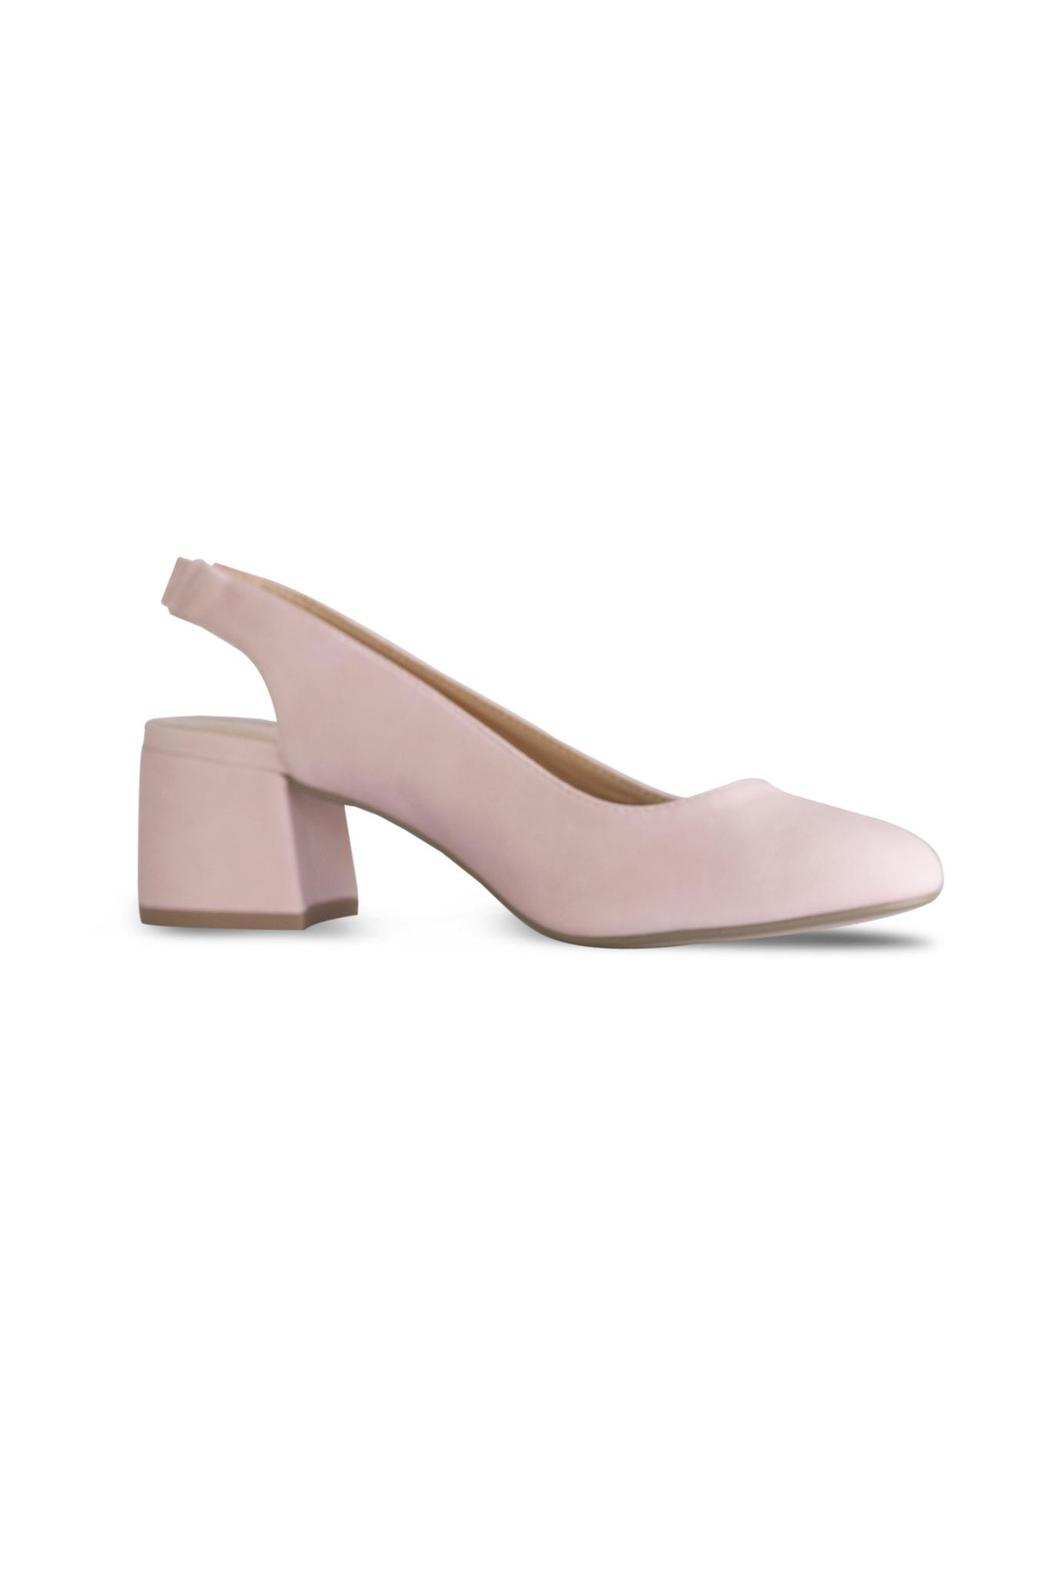 City Classified Pink Slingback Pump - Front Full Image